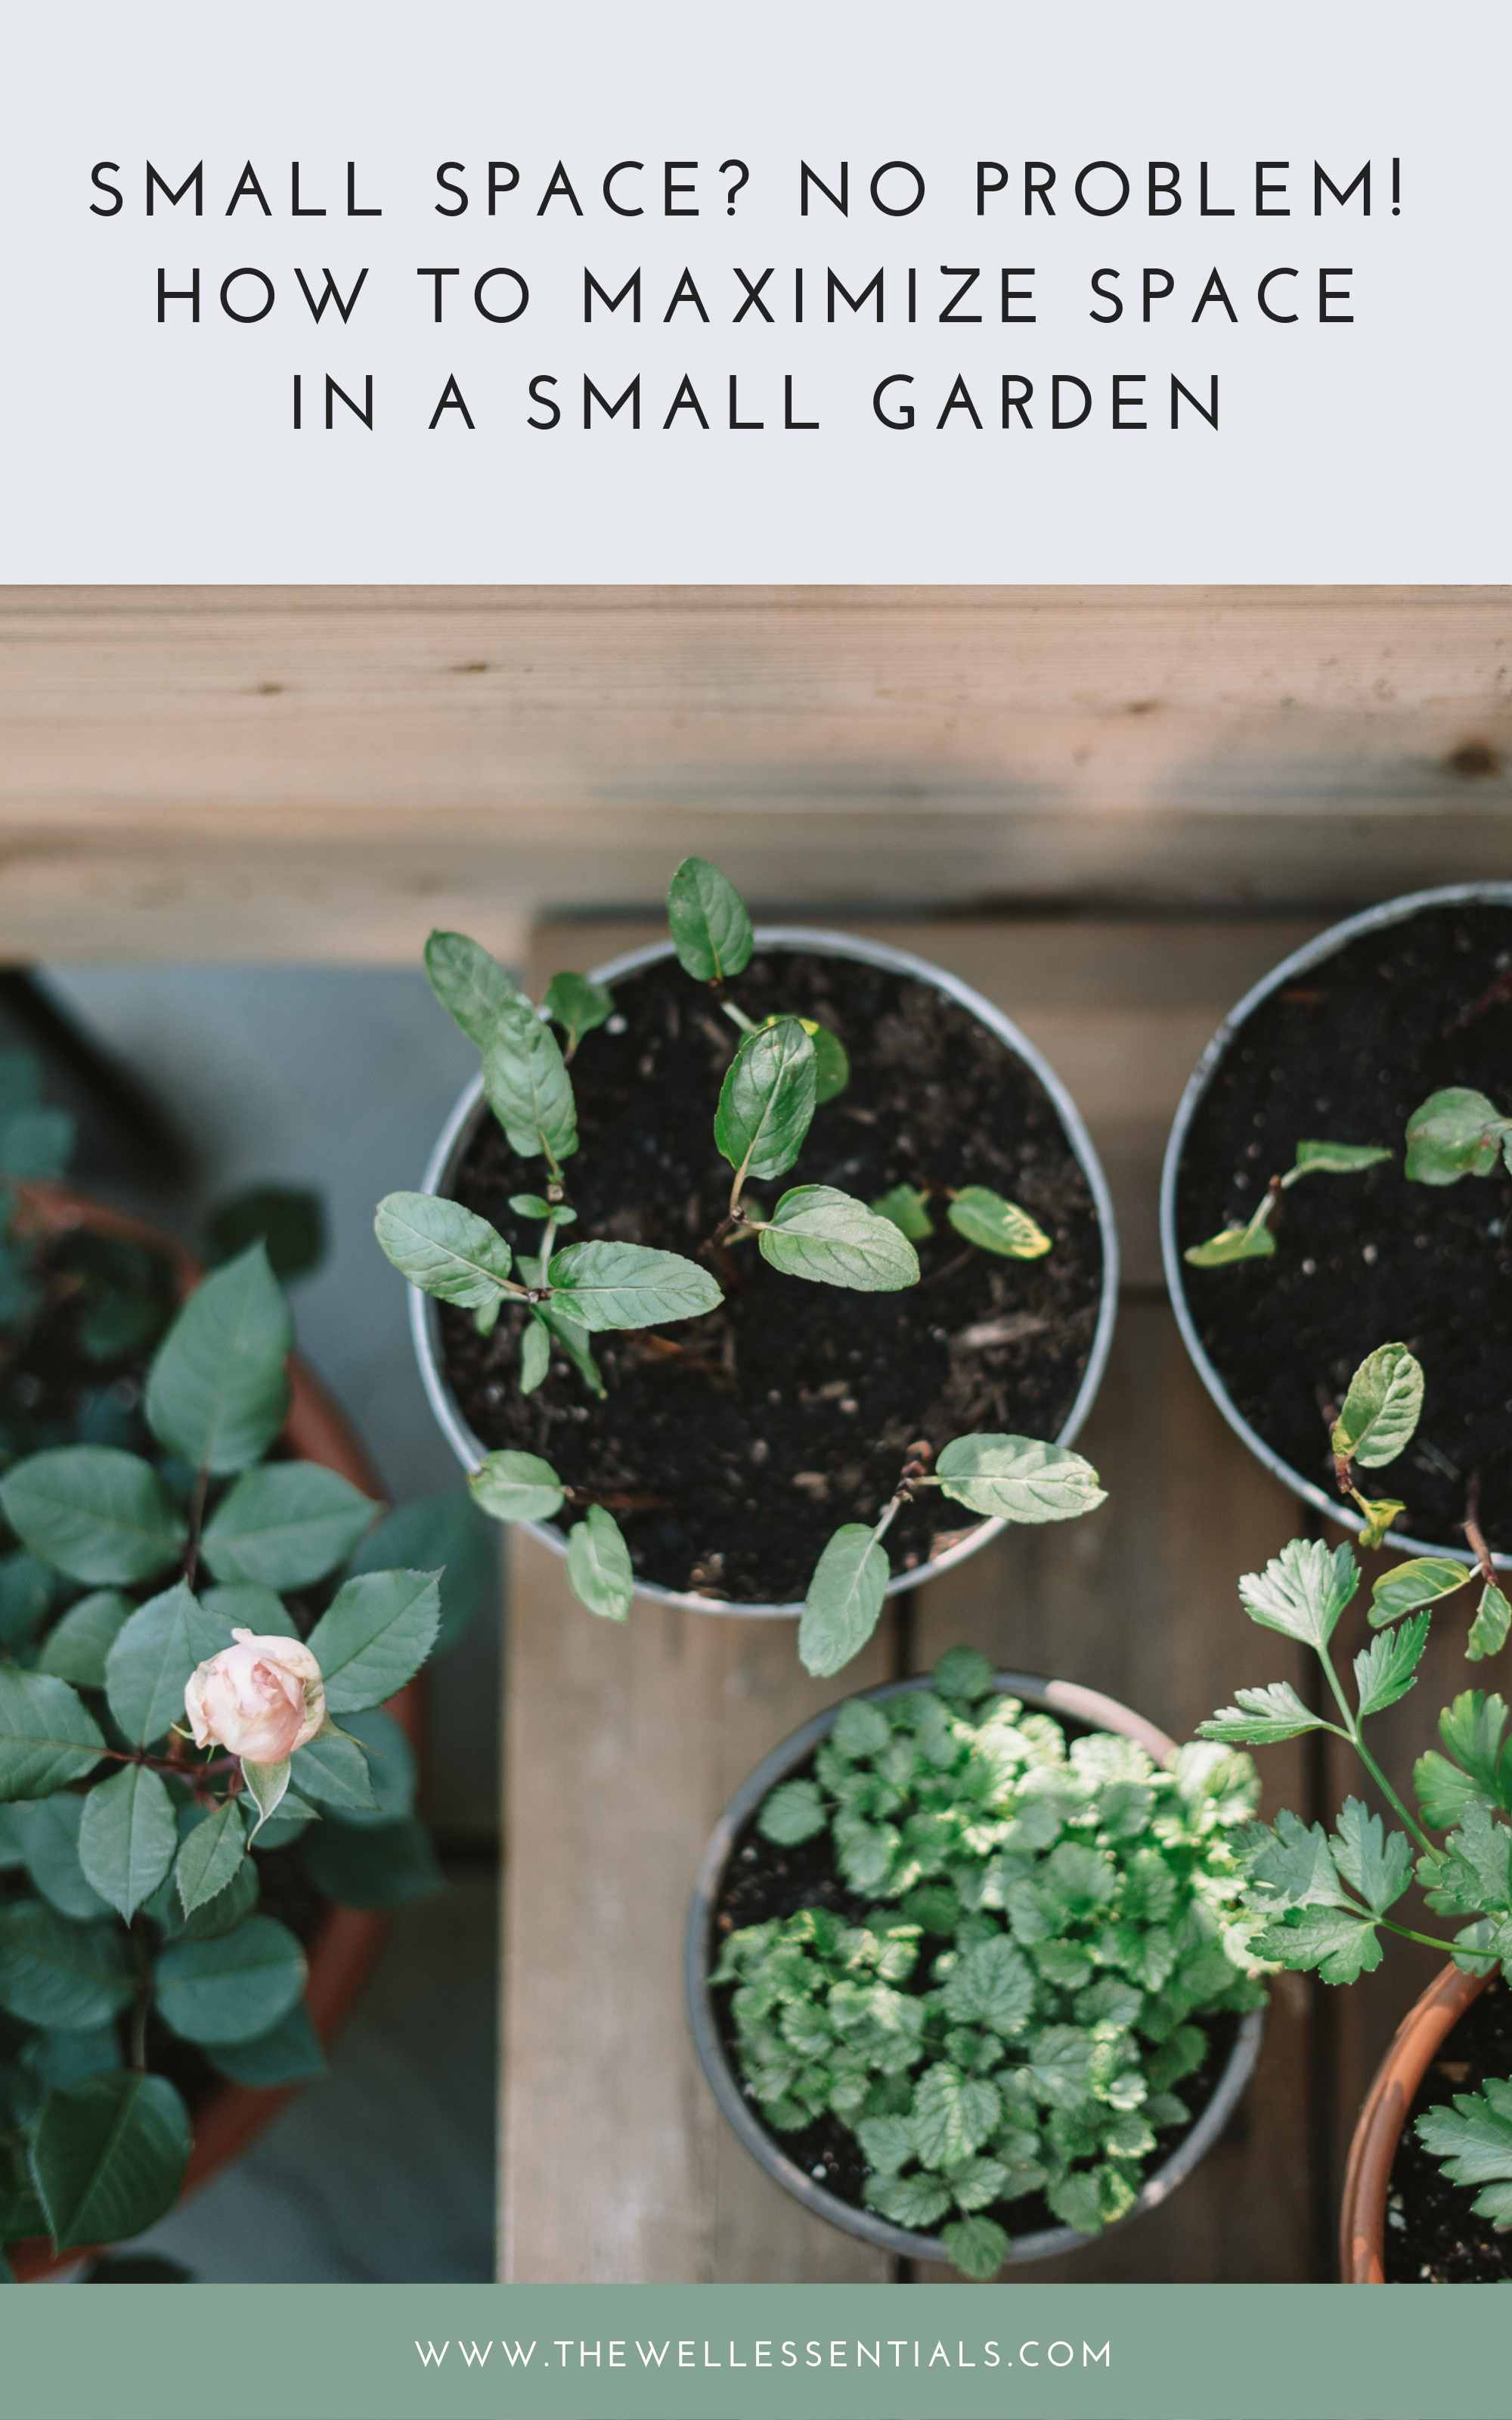 How To Maximize Space (And Grow More!) With Small Space Gardening